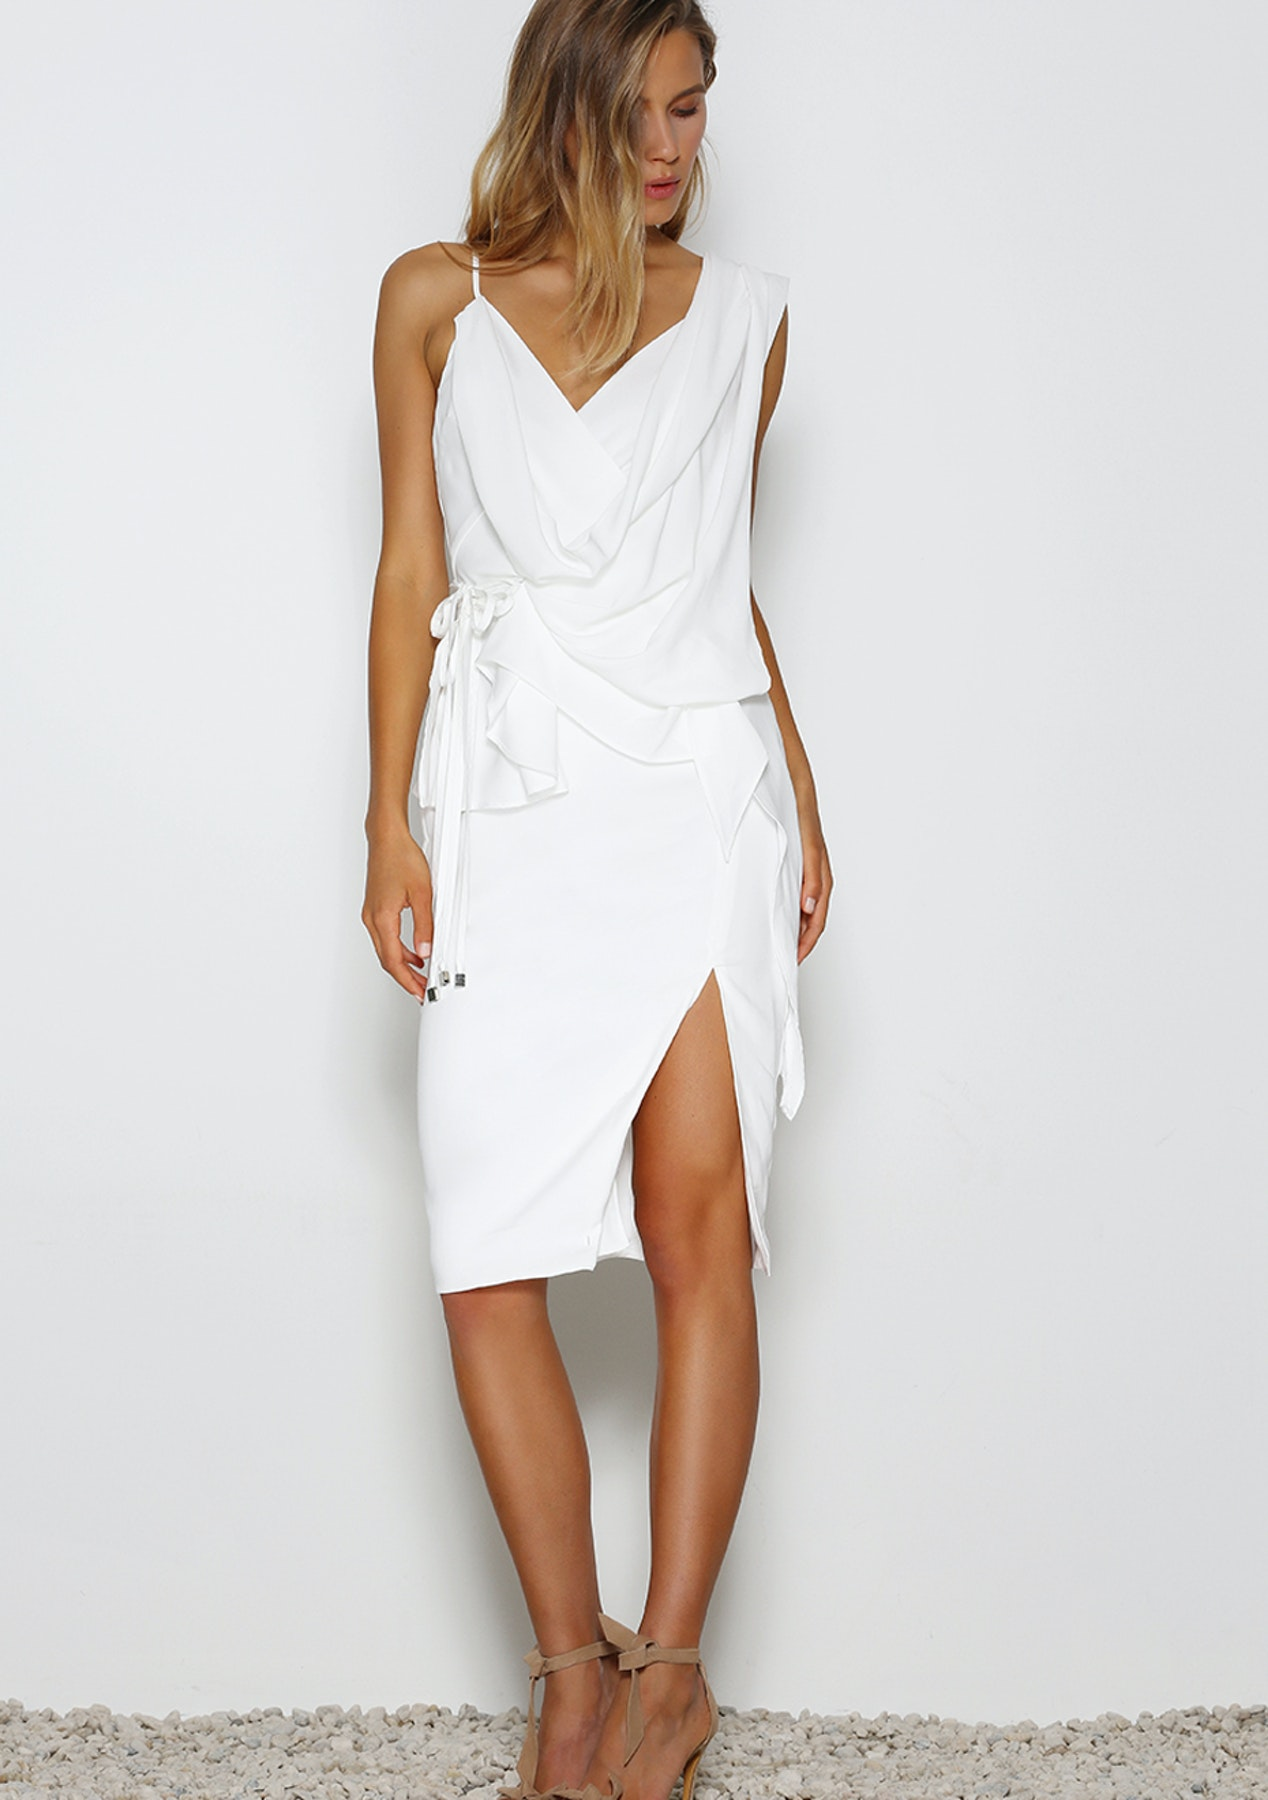 65c018ab381a Prem The Label - Resolution Midi Dress - White - Designer Outlet - Onceit